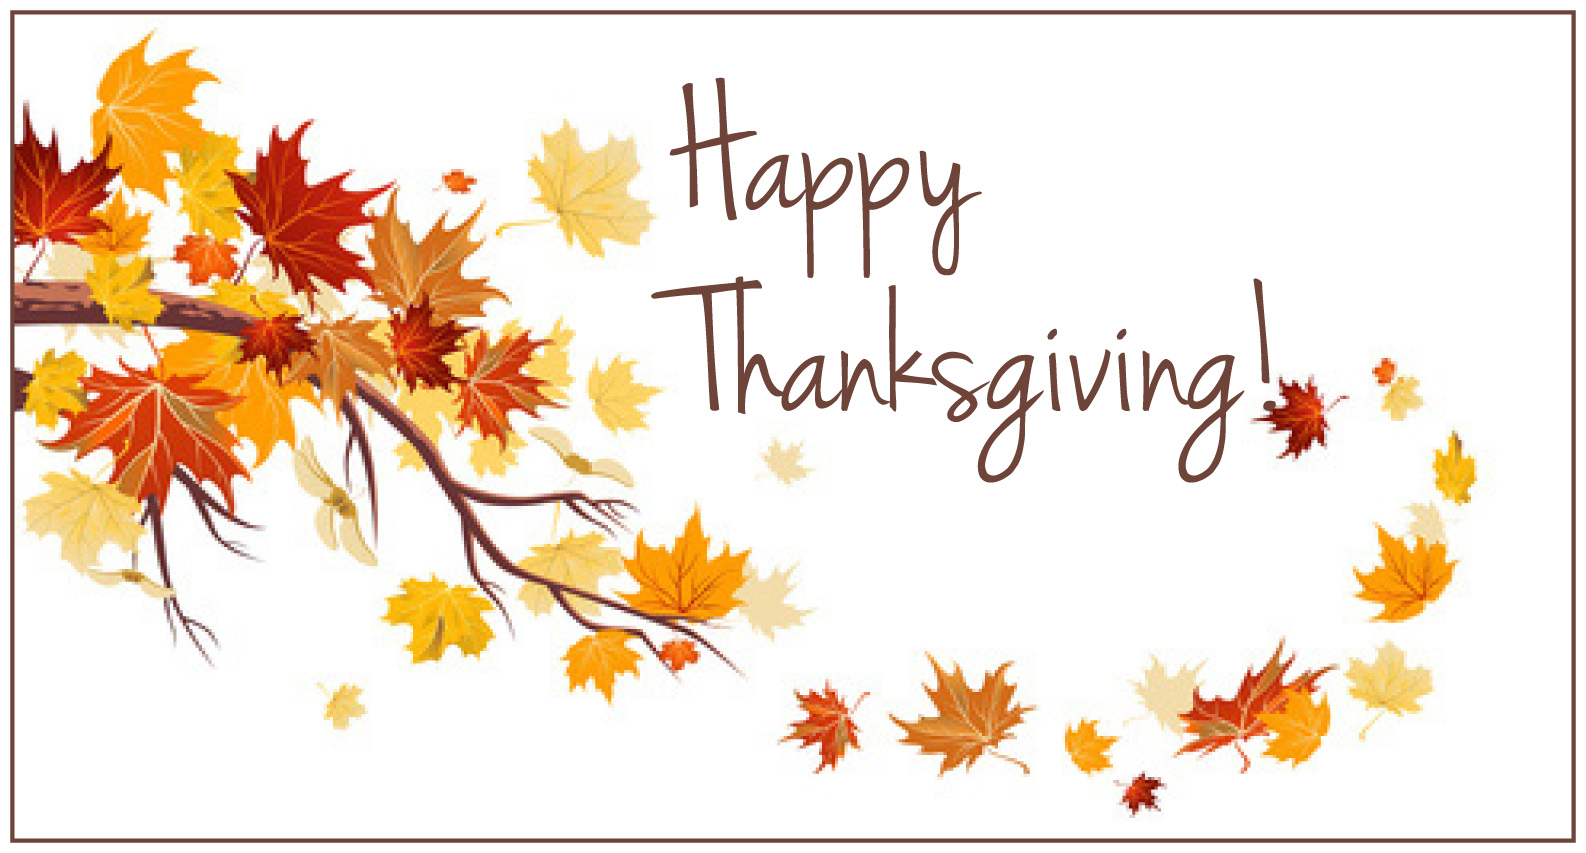 Happy-Thanksgiving-Images.jpg